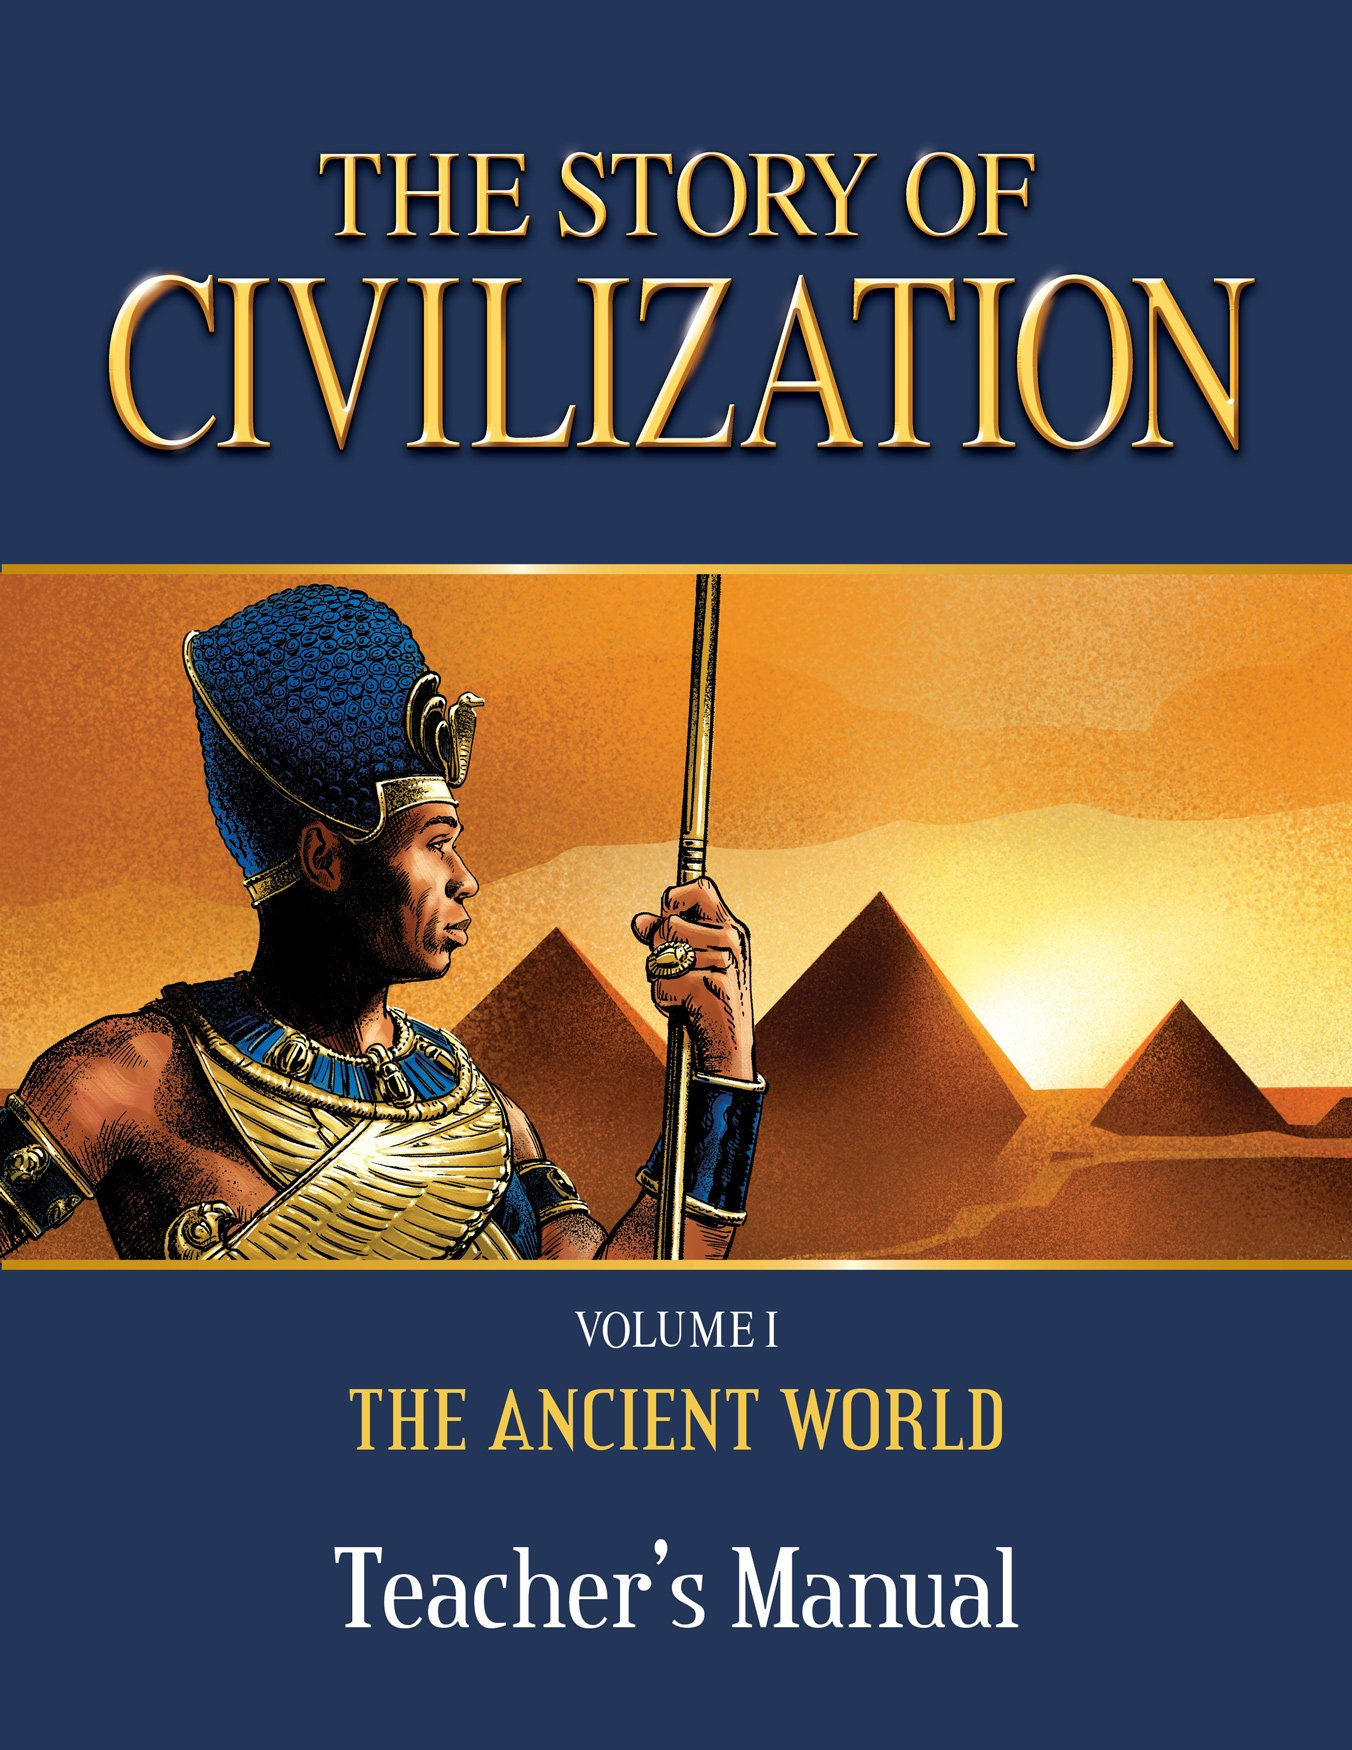 The Story of Civilization Teacher's Manual: VOLUME I - The Ancient World